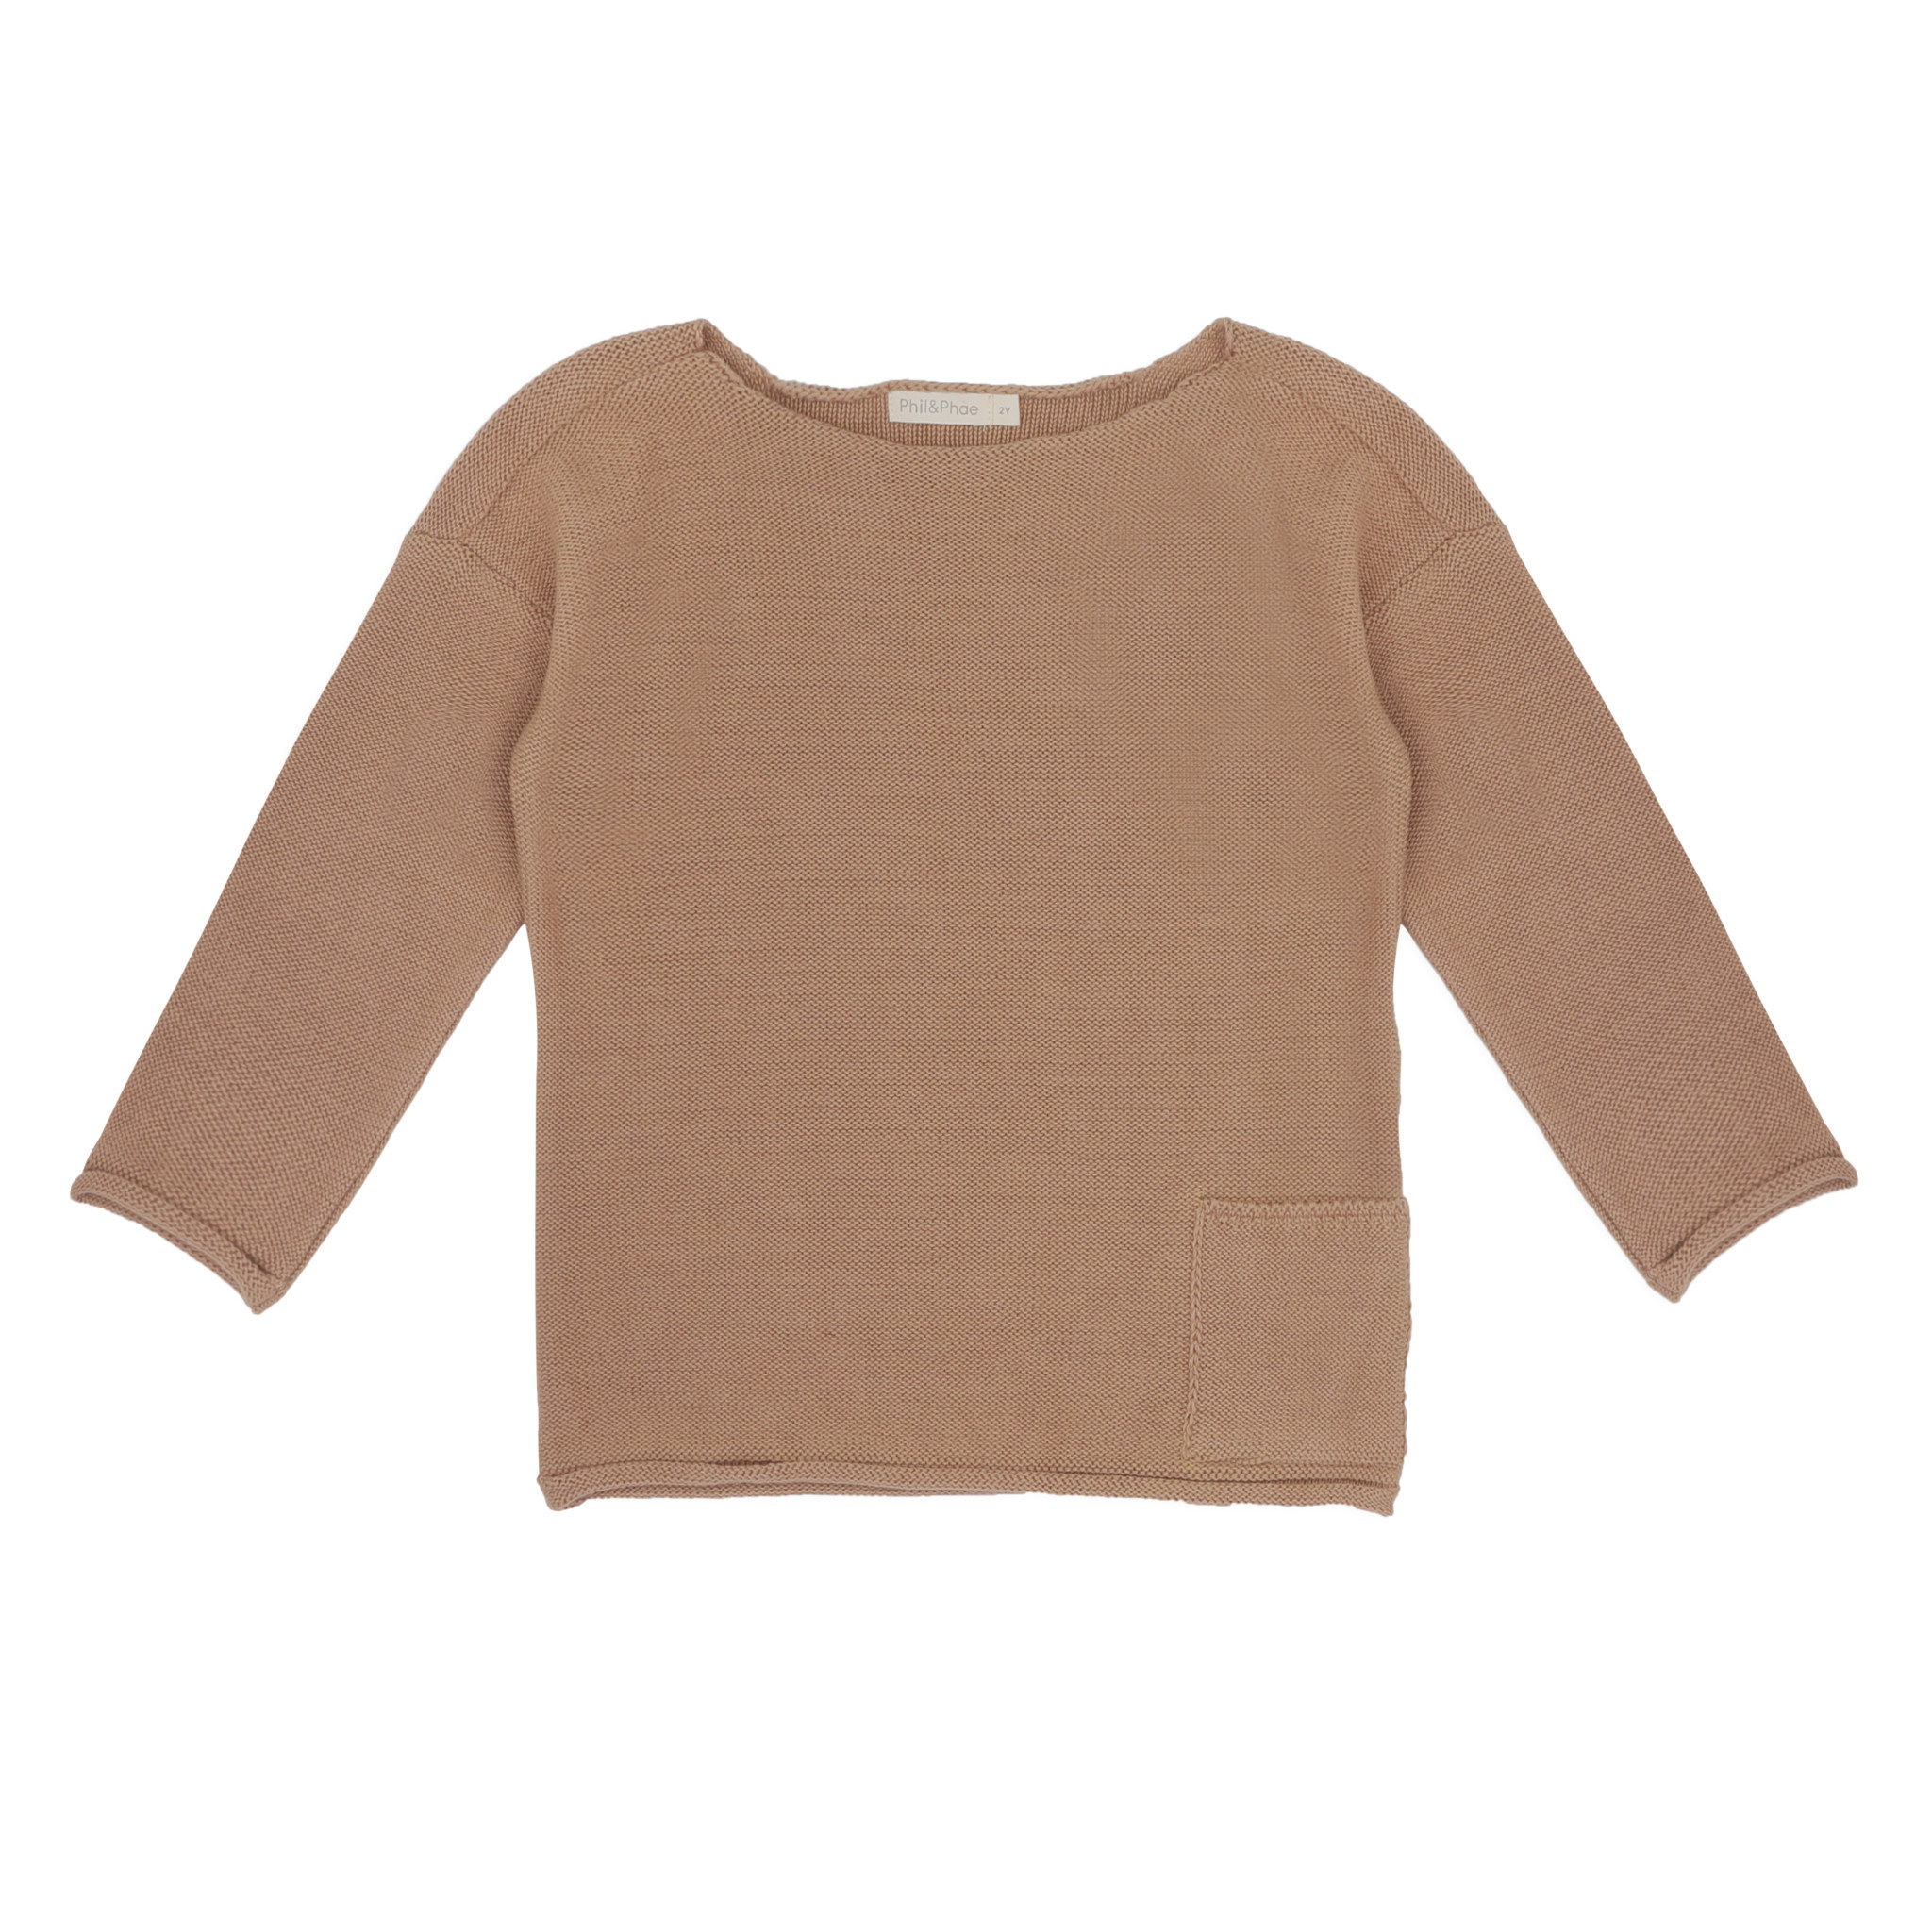 Phil&Phae Phil & Phae - Drop-shoulder knit sweater dusty nude